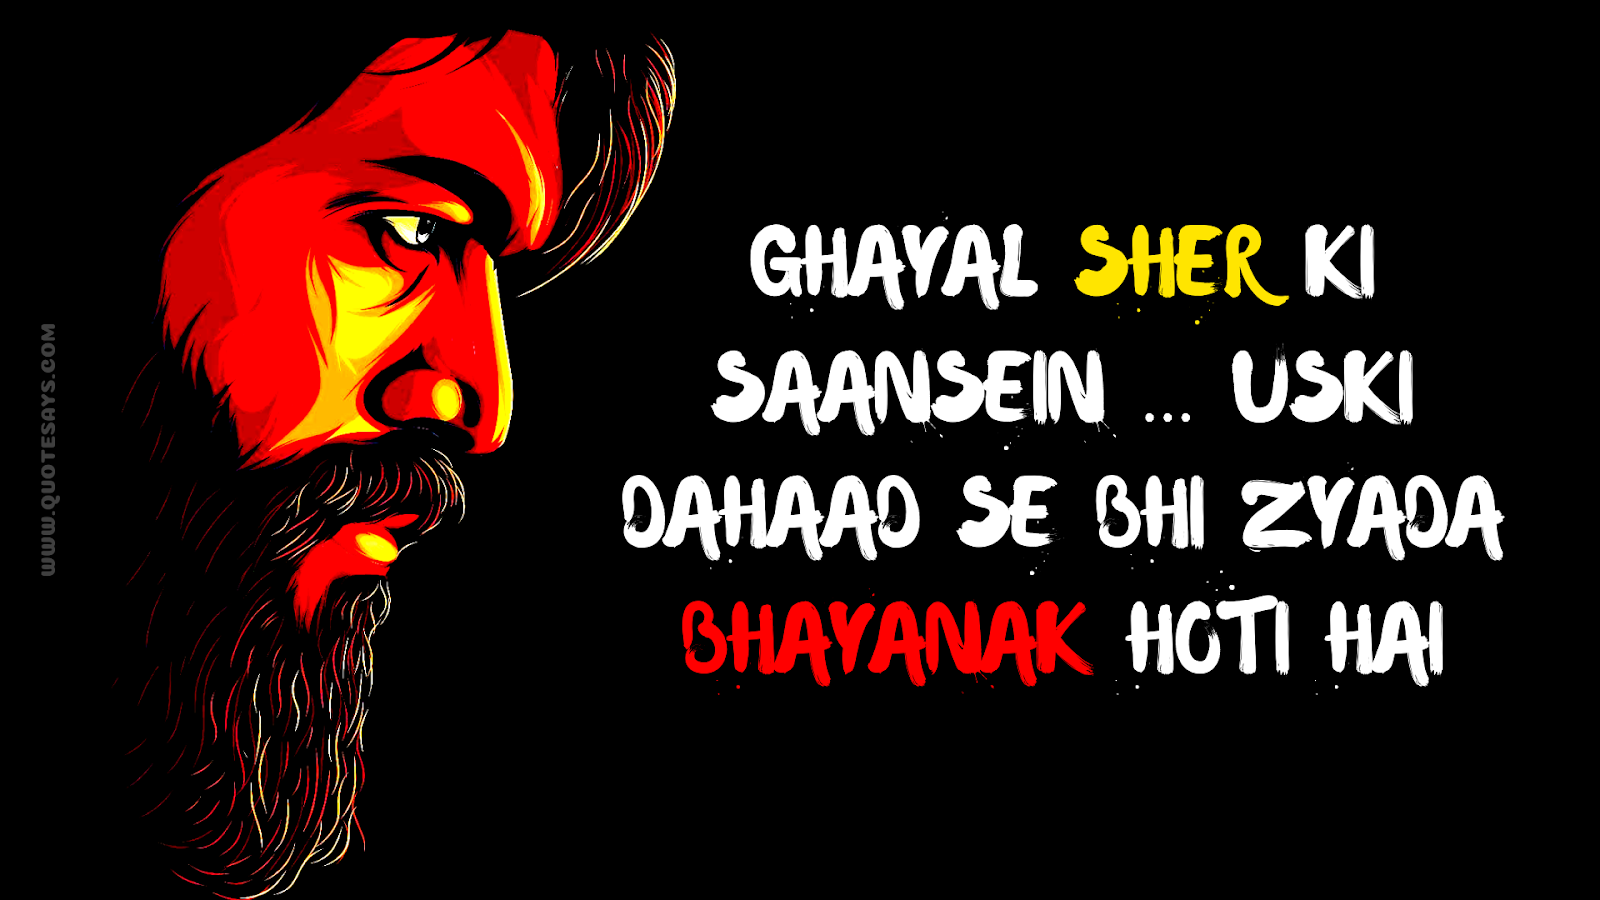 Powerful Kgf Dialogues In Hindi Fire Of Motivation Quote Says